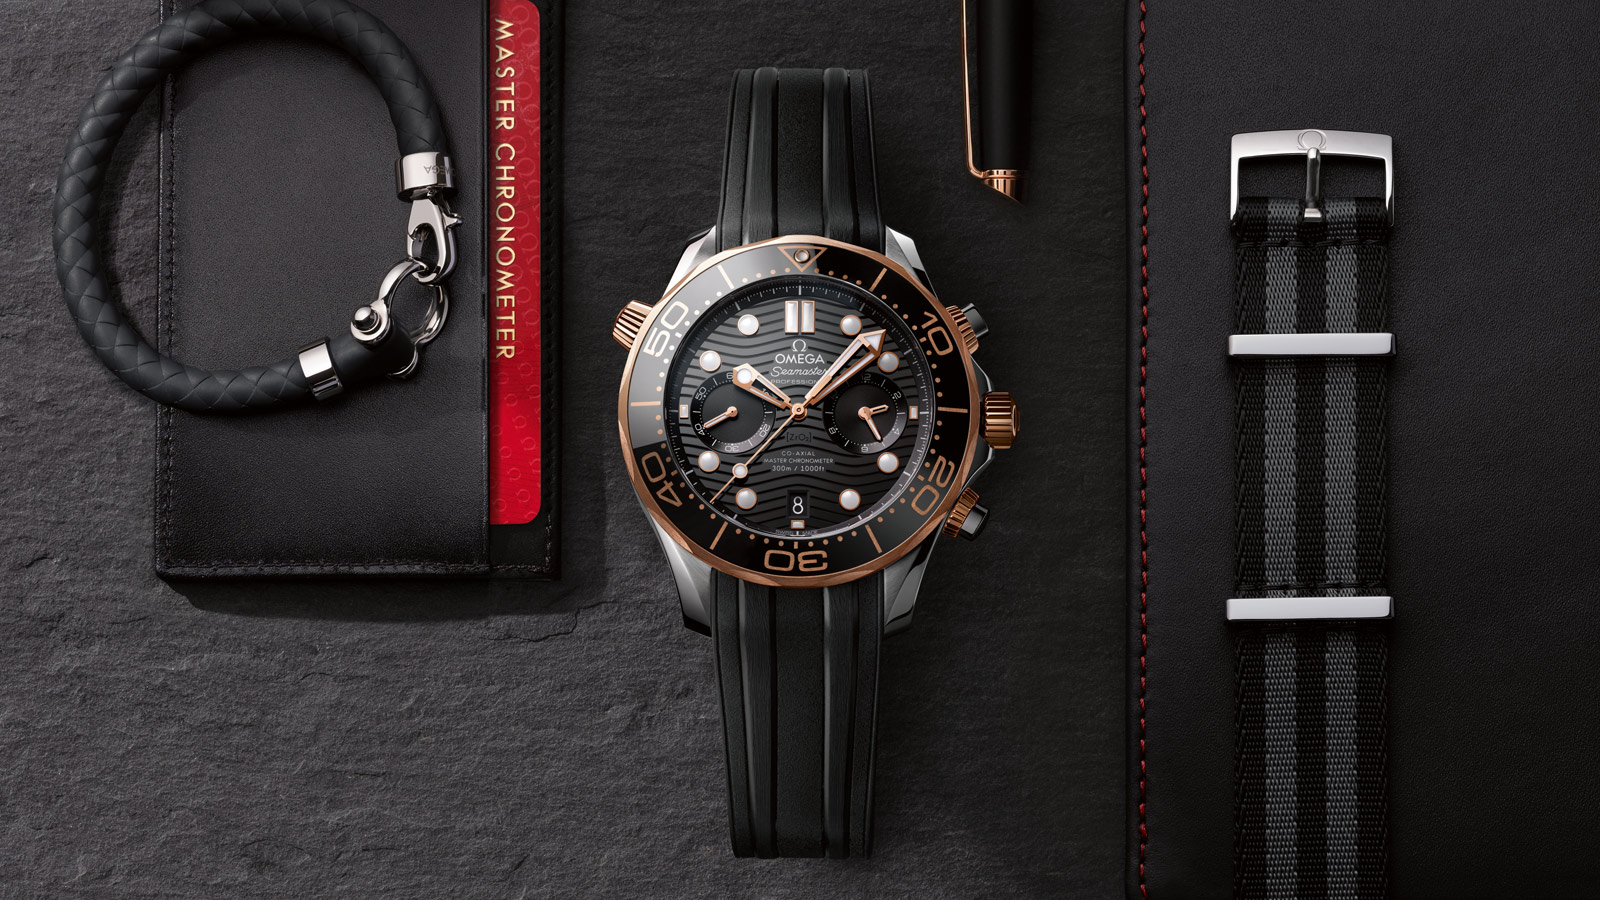 Seamaster Diver 300 M Diver 300M Chronographe Omega Co‑Axial Master Chronometer 44 mm Montre - 210.22.44.51.01.001